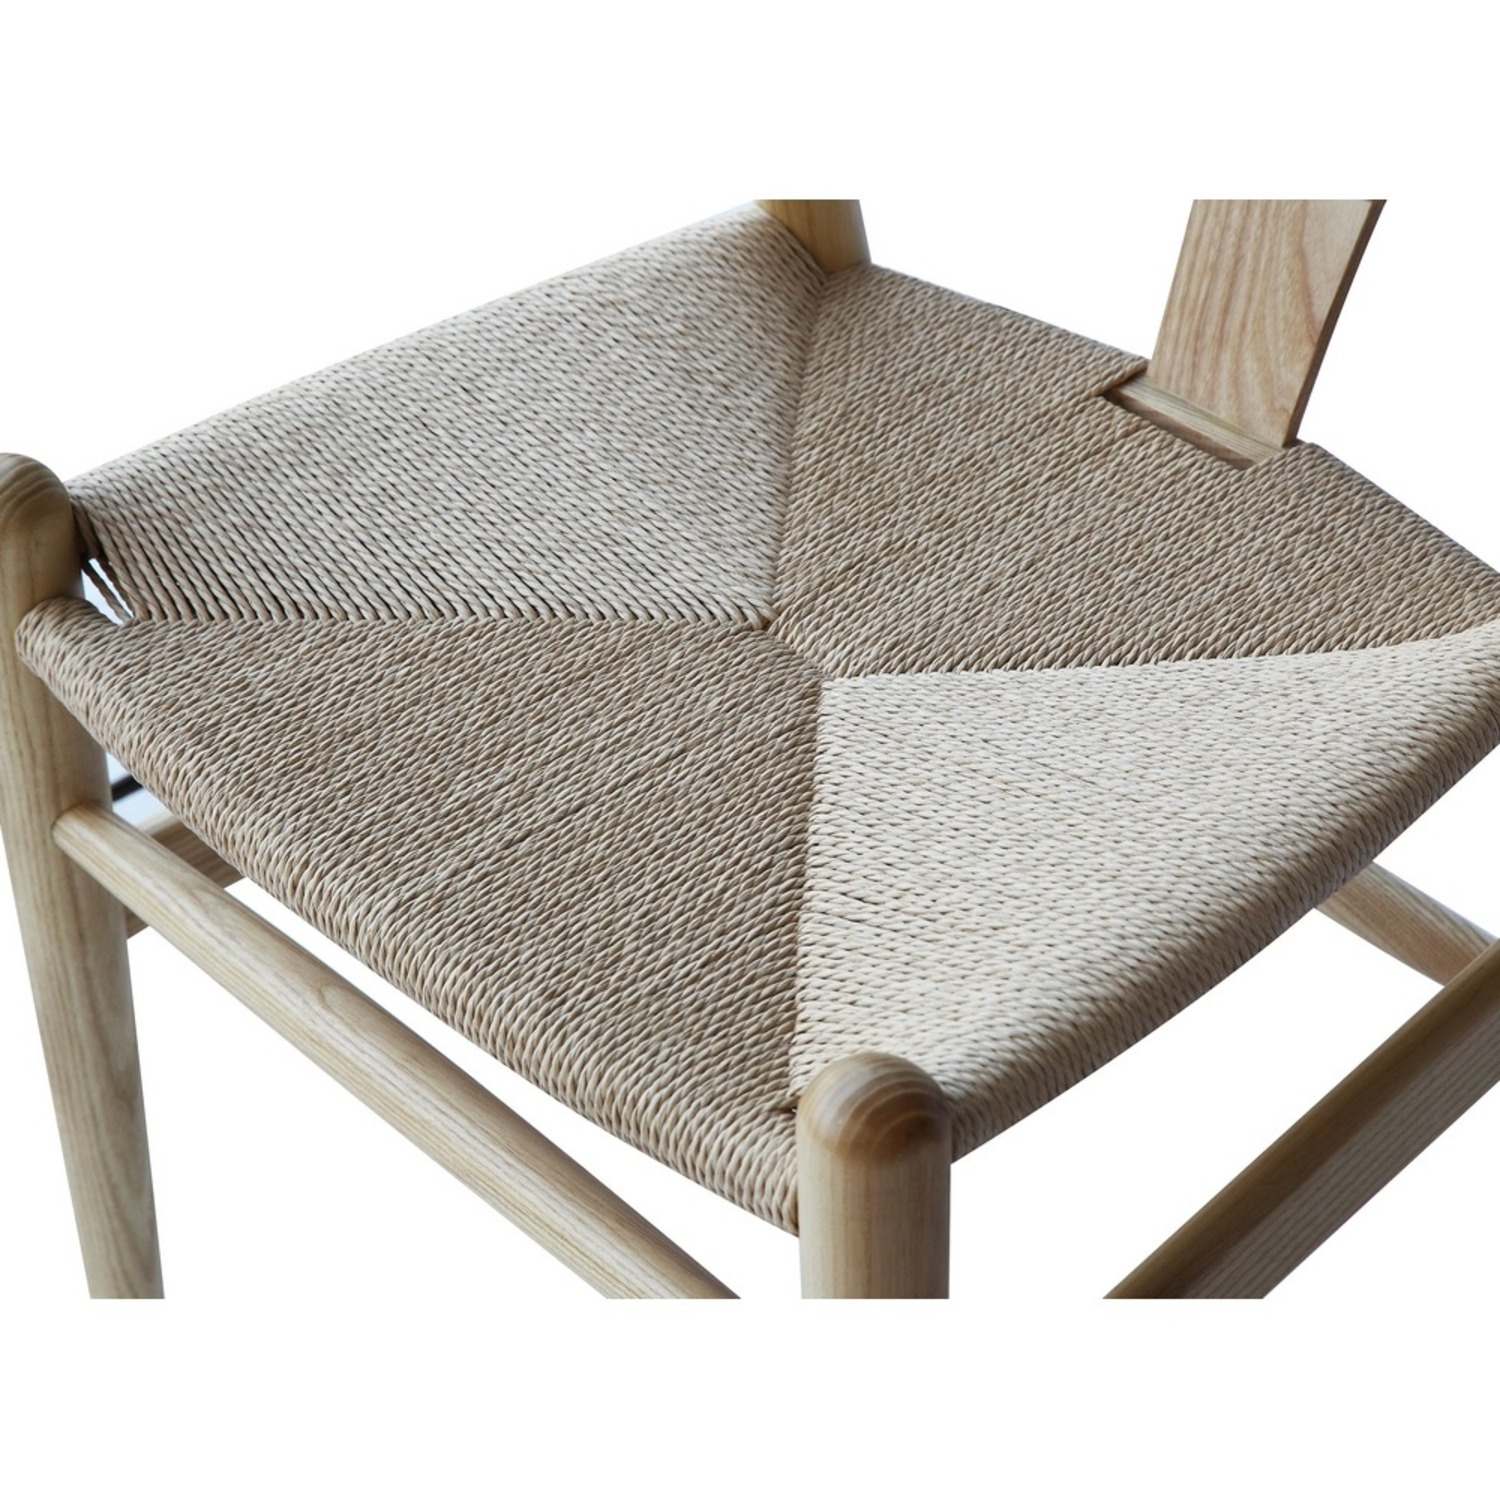 Dining Chair In Natural Frame & Natural Hemp Seat - image-6